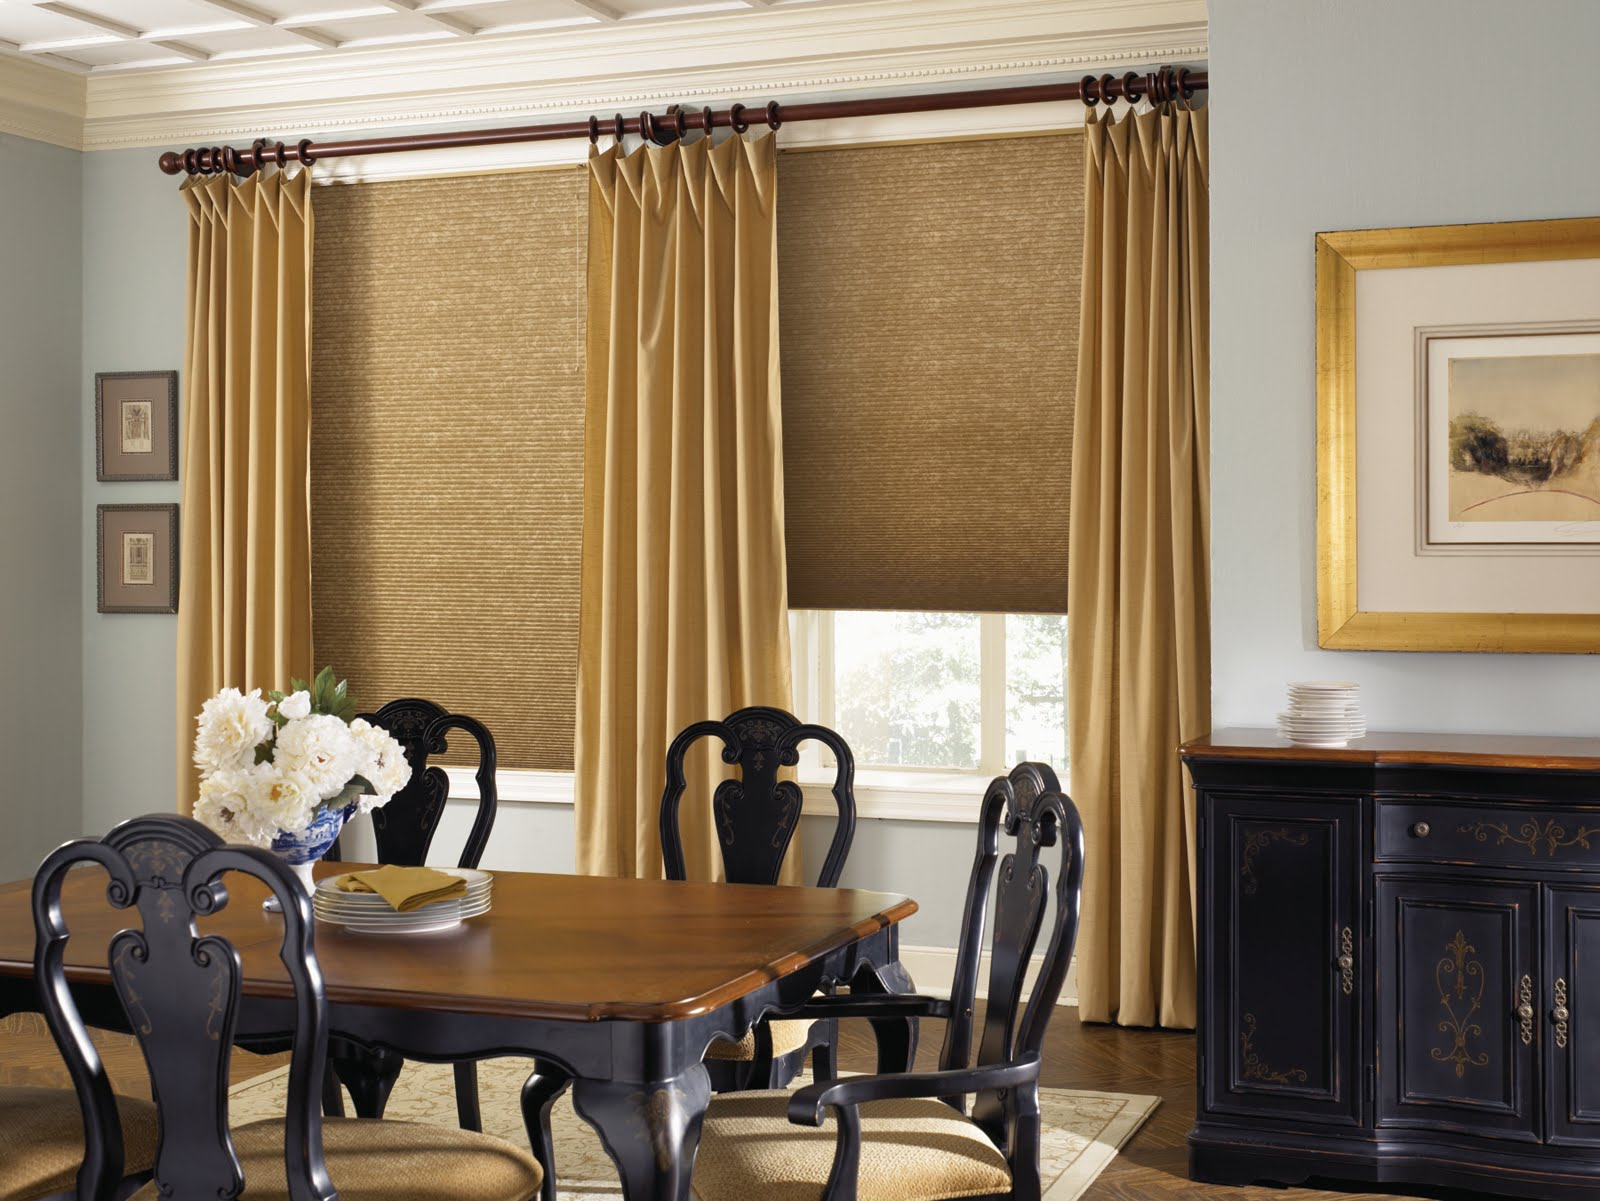 How to use contemporary curtains in your home decor for Curtains dining room ideas